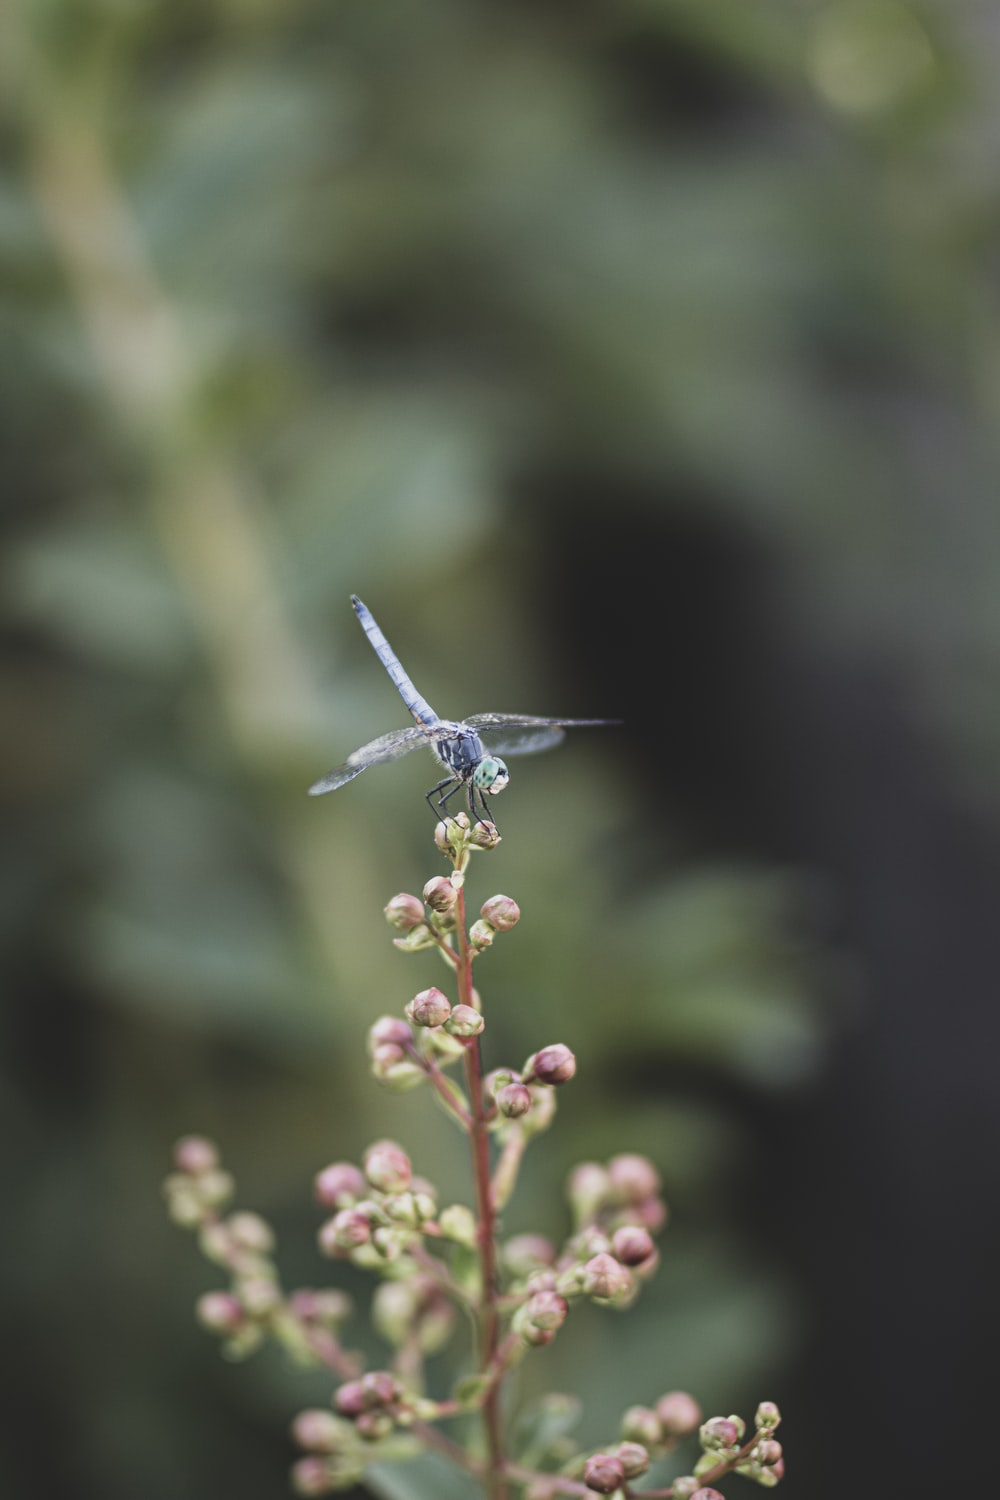 blue and white dragonfly perched on pink flower buds in tilt shift lens